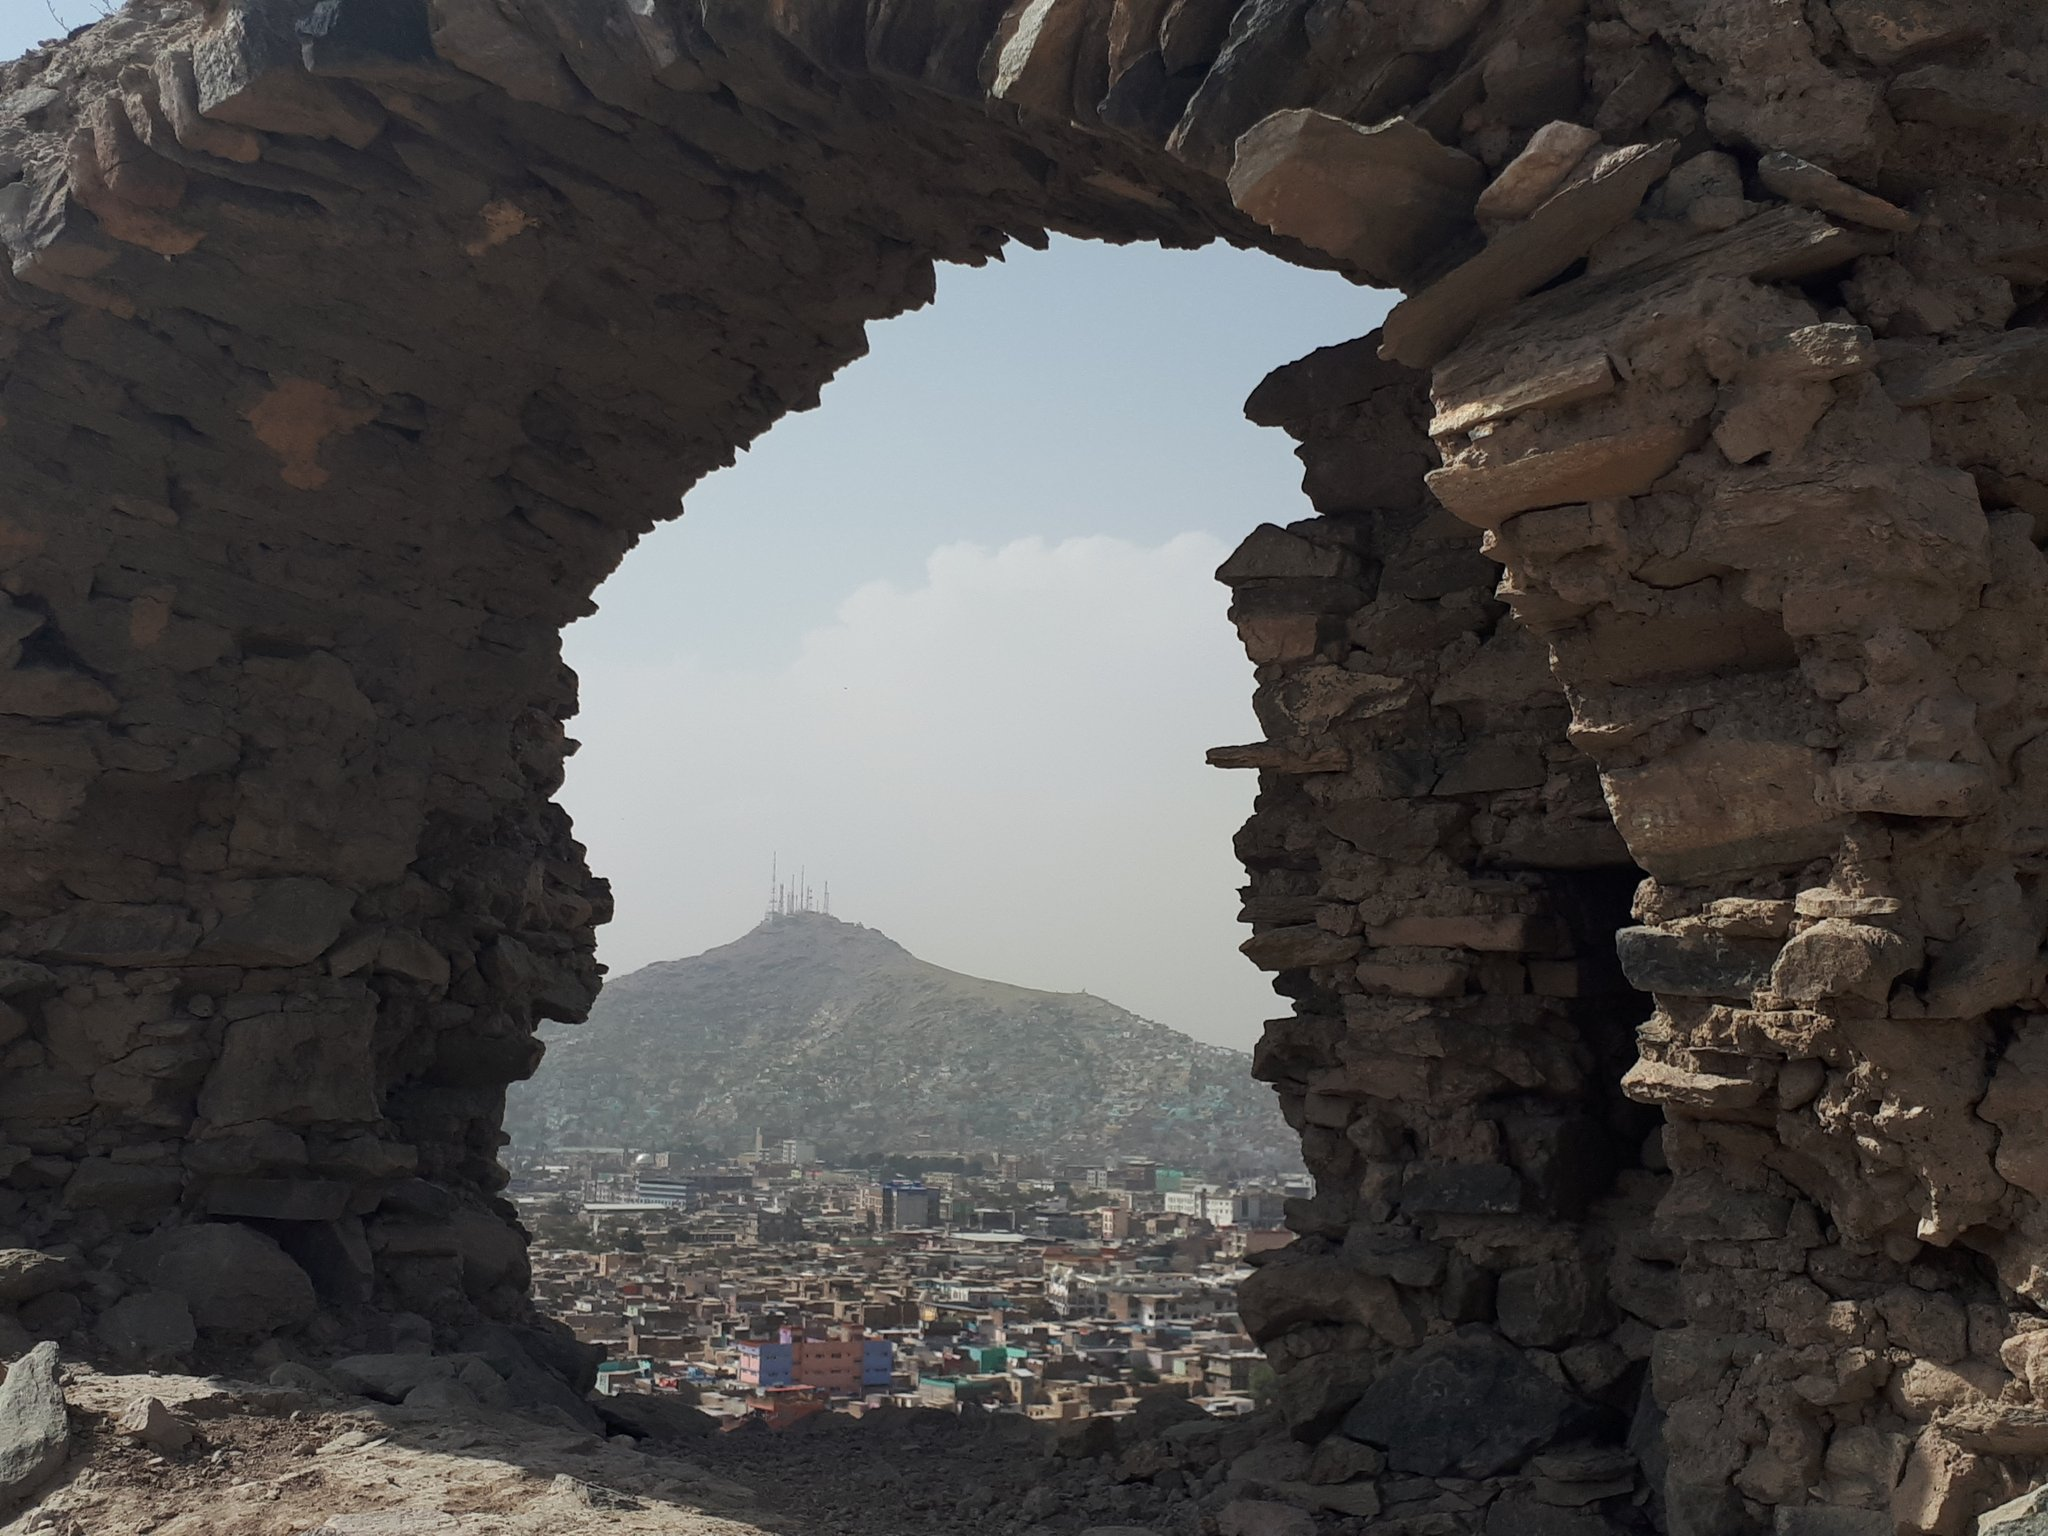 More views of #Afghanistan's fabulous Bala Hissar in #Kabul. The fortress dates from the fifth century AD. I'm showing photos of mine from a recent visit all this week. Check out #BalaHissarKabul for the full collection as it grows. https://t.co/7n07XNg8Jl